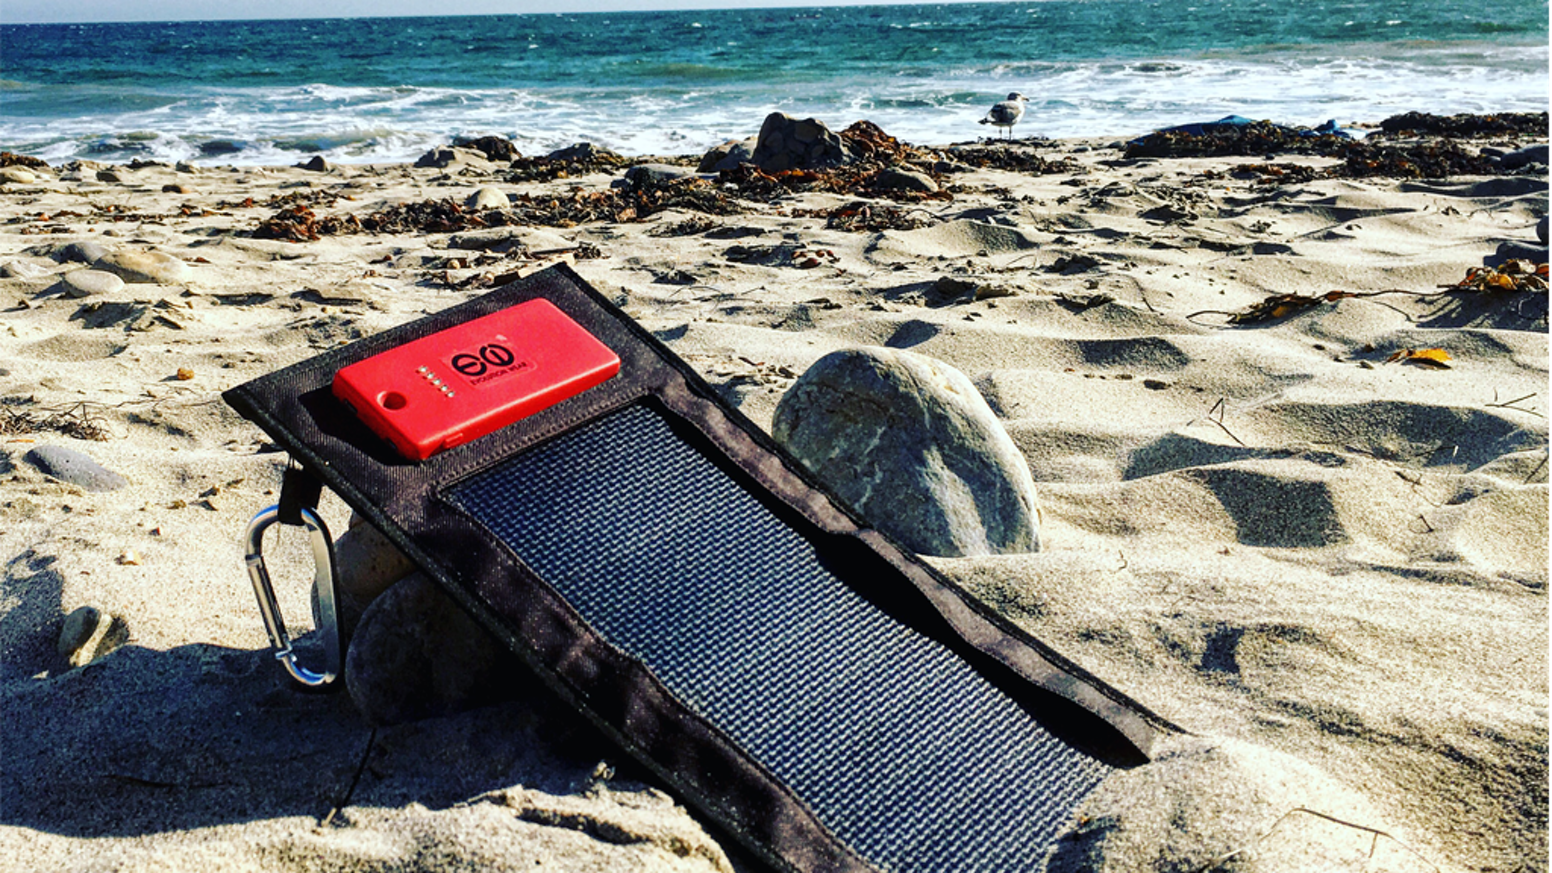 Evolution Wear Rapidsol Faster Than All The Others By Battery Via Mini Usb Port On Charging Circuit Or Solar Charger Has A 27 Amp C Power Output Attaches To Almost Anything 14w 1 Panel Solution Created